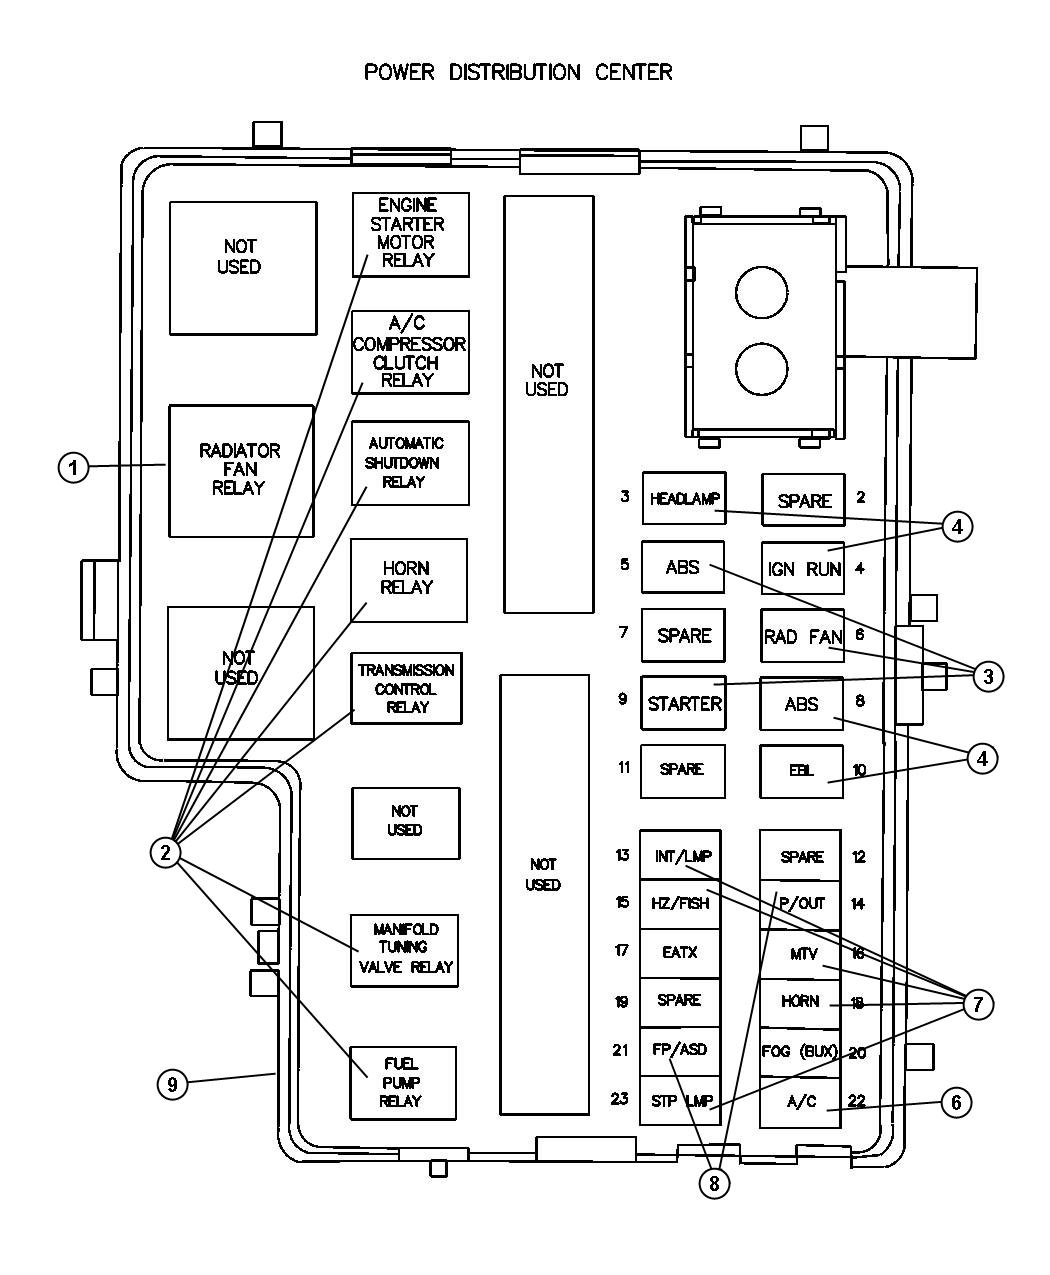 hight resolution of 2000 dodge neon fuse box diagram simple wiring schema rh 38 aspire atlantis de 1996 lincoln town car fuse box diagram 1996 mazda mx 6 fuse box diagram